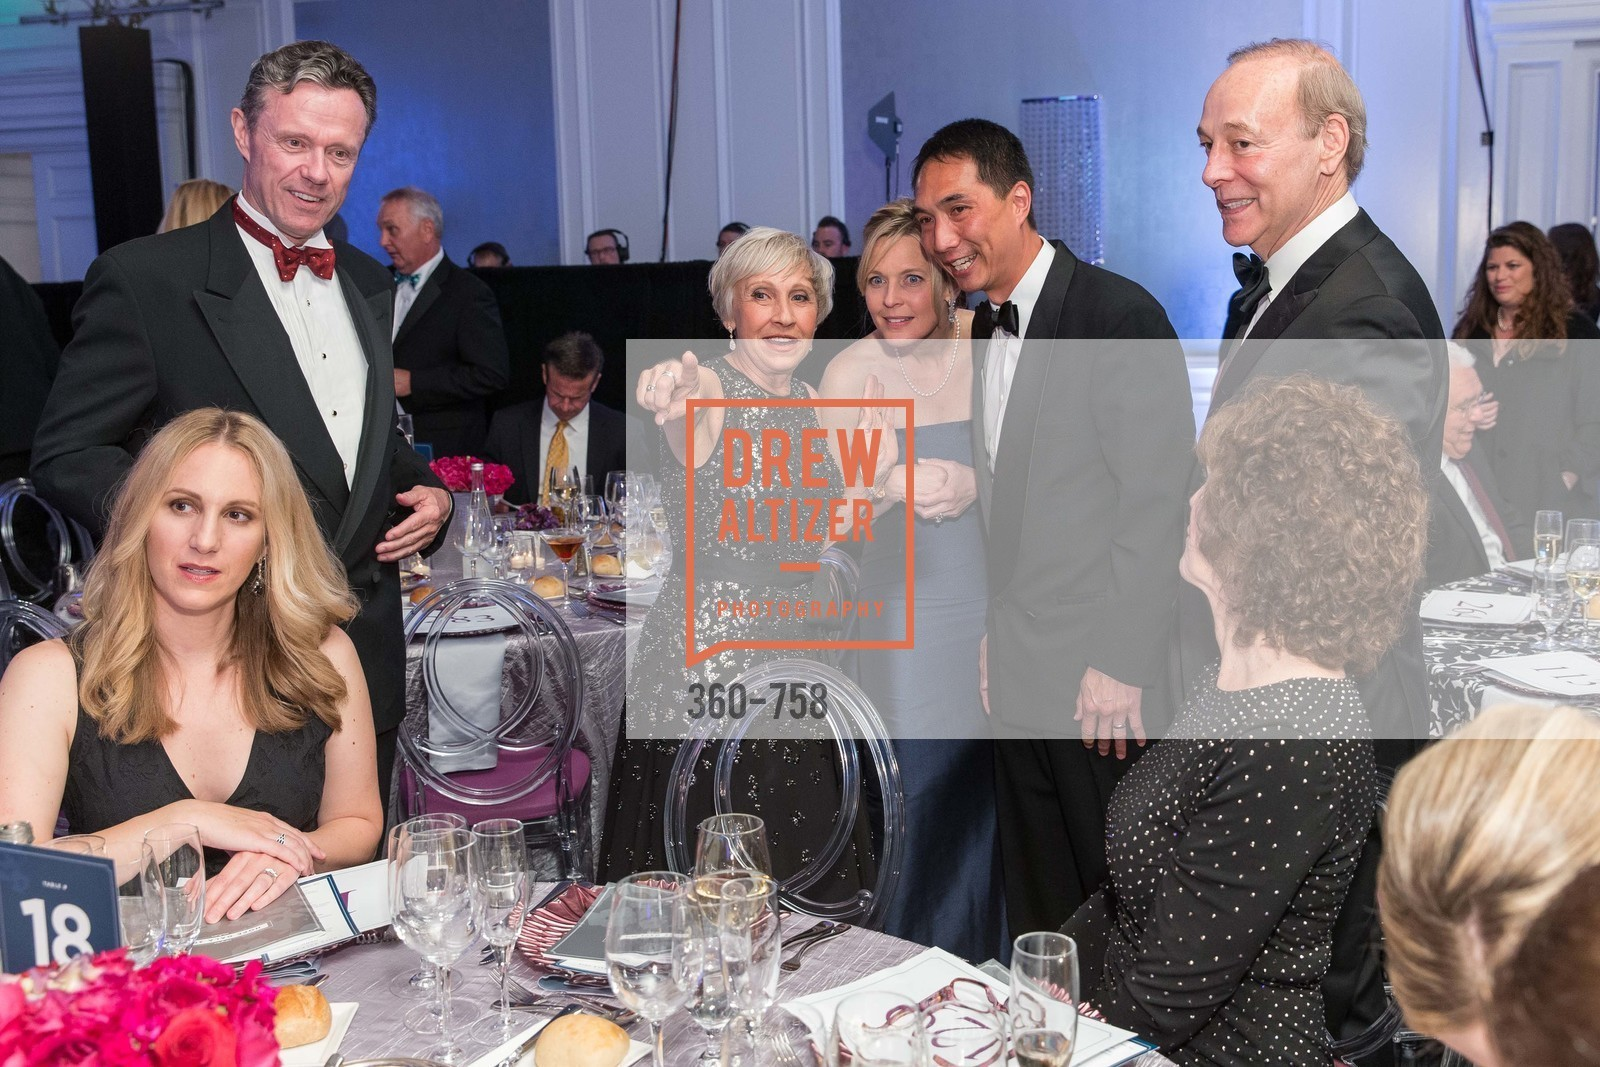 Bill Sagan, Lindsey Hulse, Pam Sagan, Denise Fong, Timothy Connor, JUVENILE DIABETES RESEARCH FOUNDATION  Hope Gala, US, May 30th, 2015,Drew Altizer, Drew Altizer Photography, full-service agency, private events, San Francisco photographer, photographer california